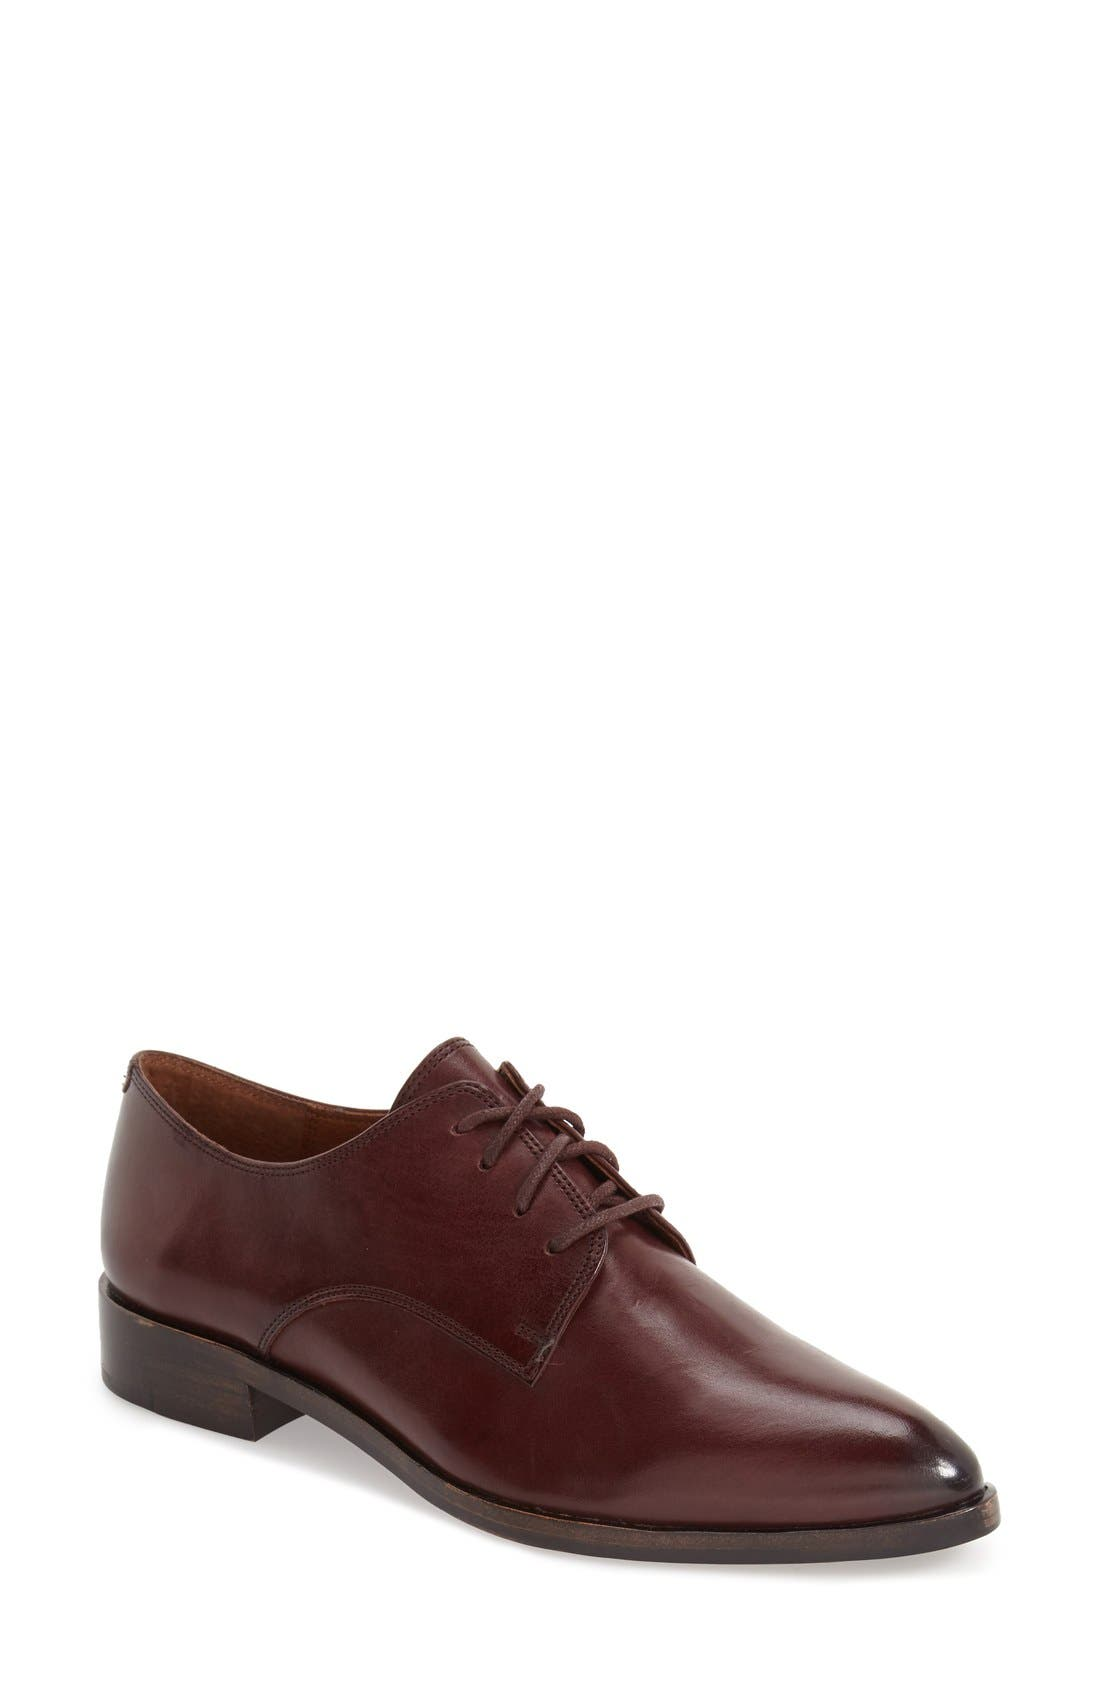 Frye 'Erica' Oxford (Women)